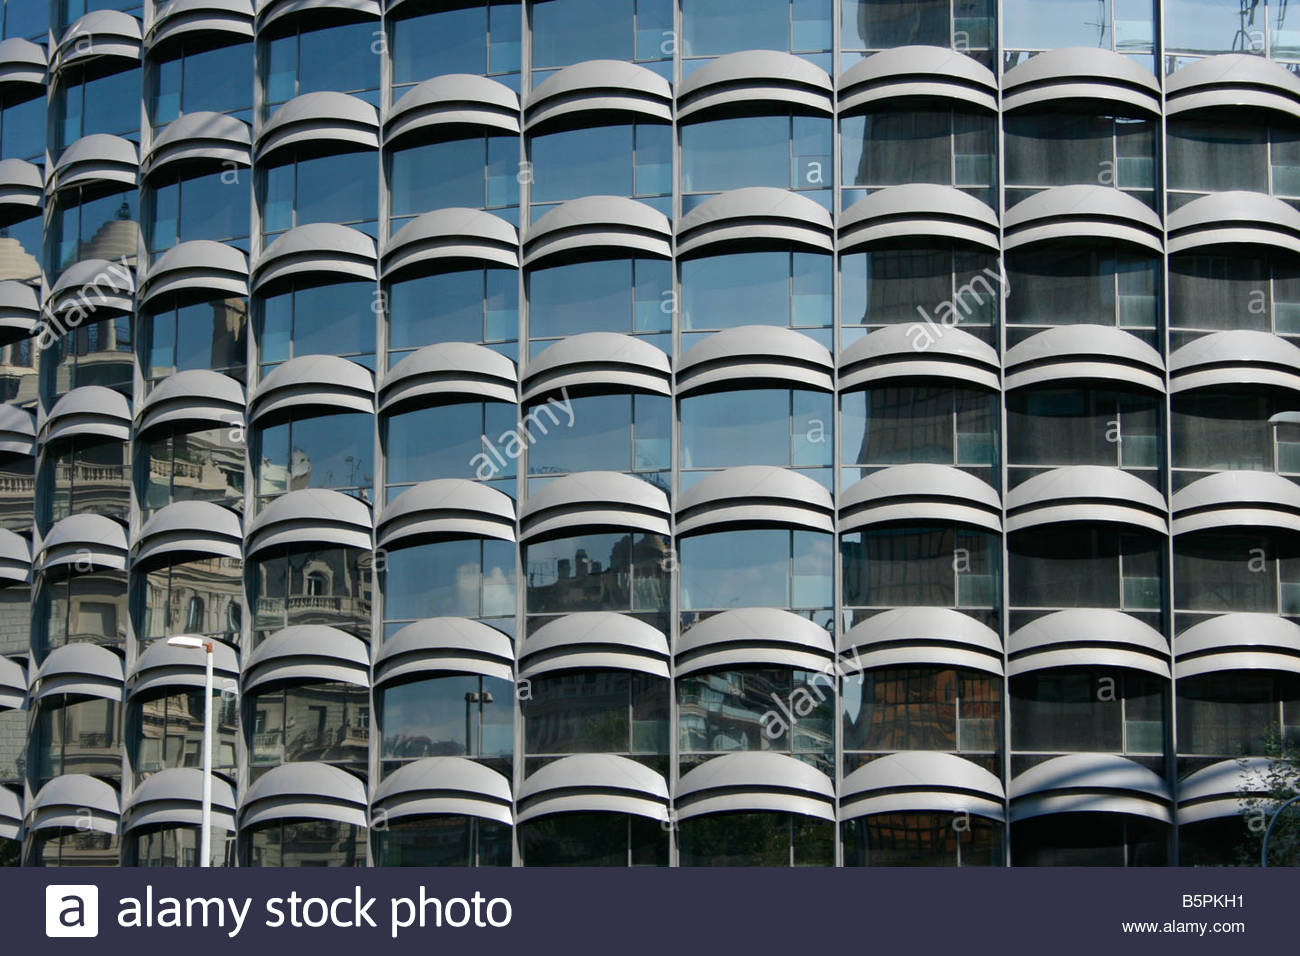 Windows on the facade of a multistorey building - Stock Image